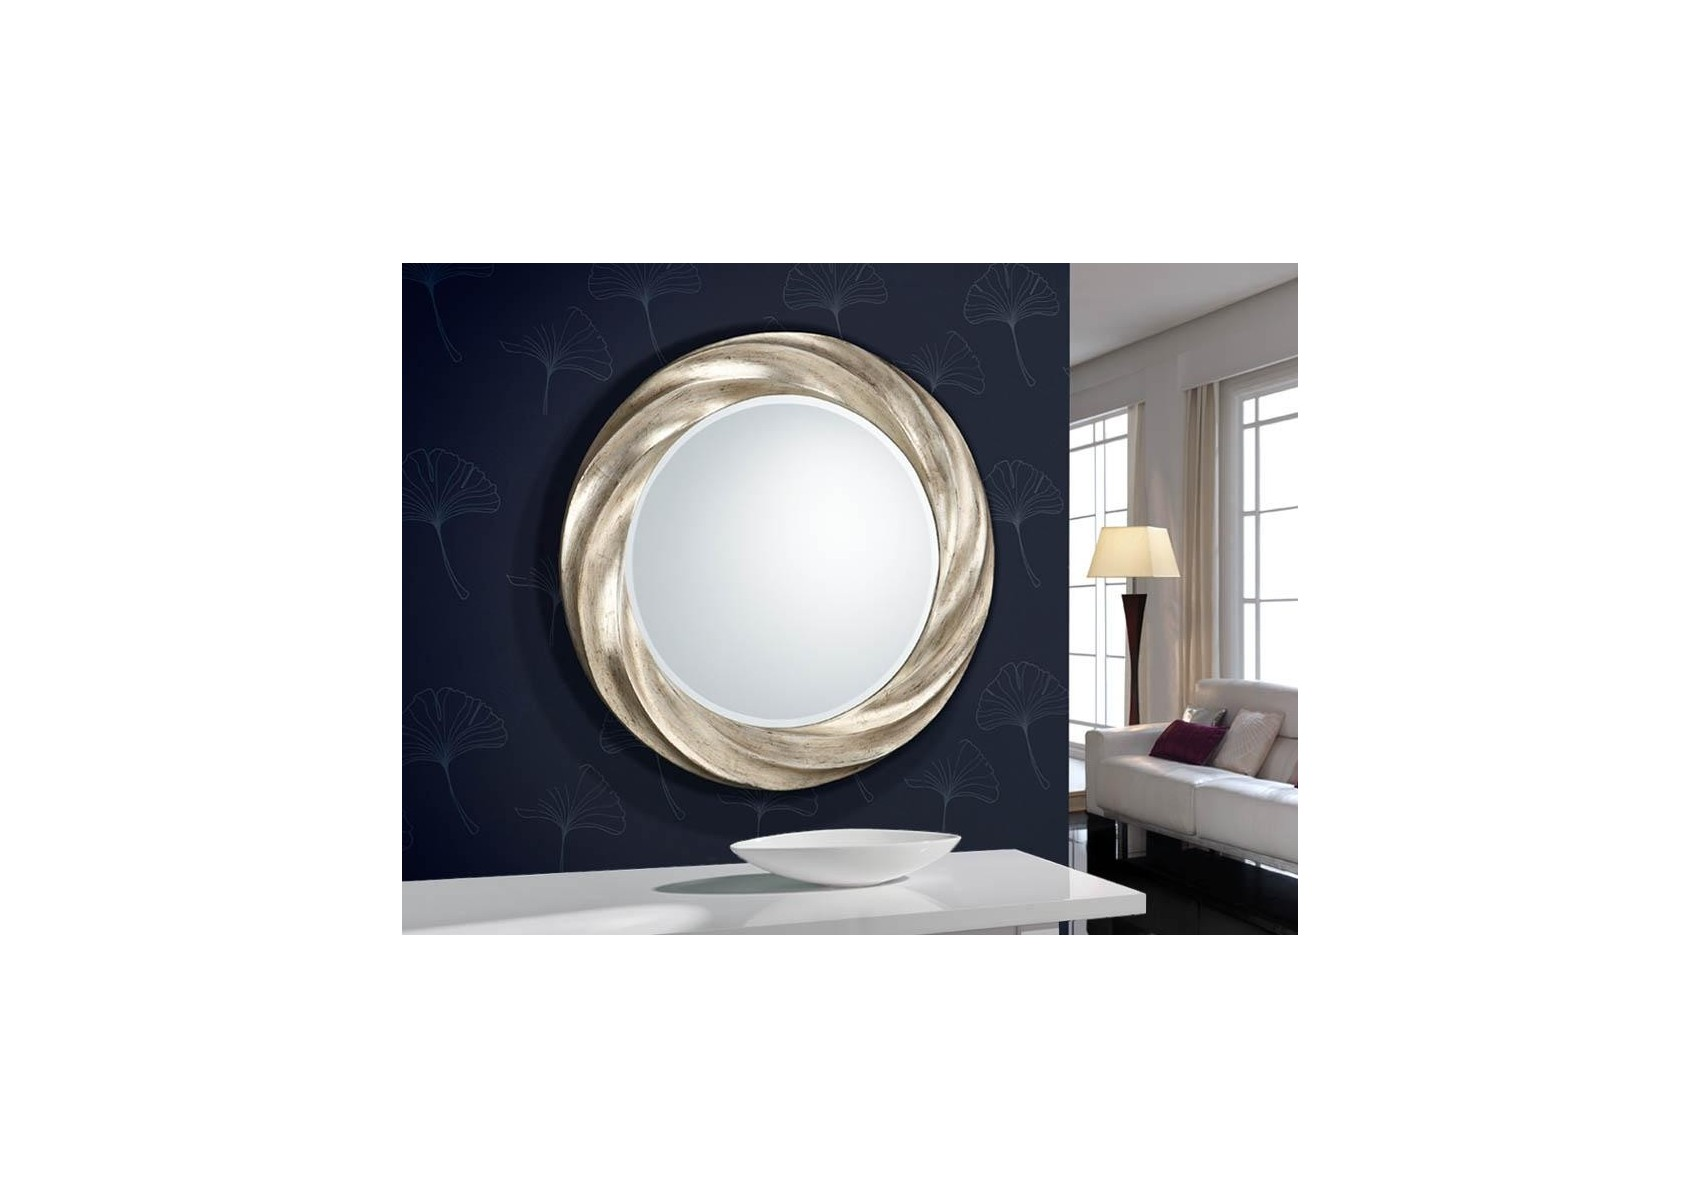 miroir original design rond rodas deco schuller. Black Bedroom Furniture Sets. Home Design Ideas